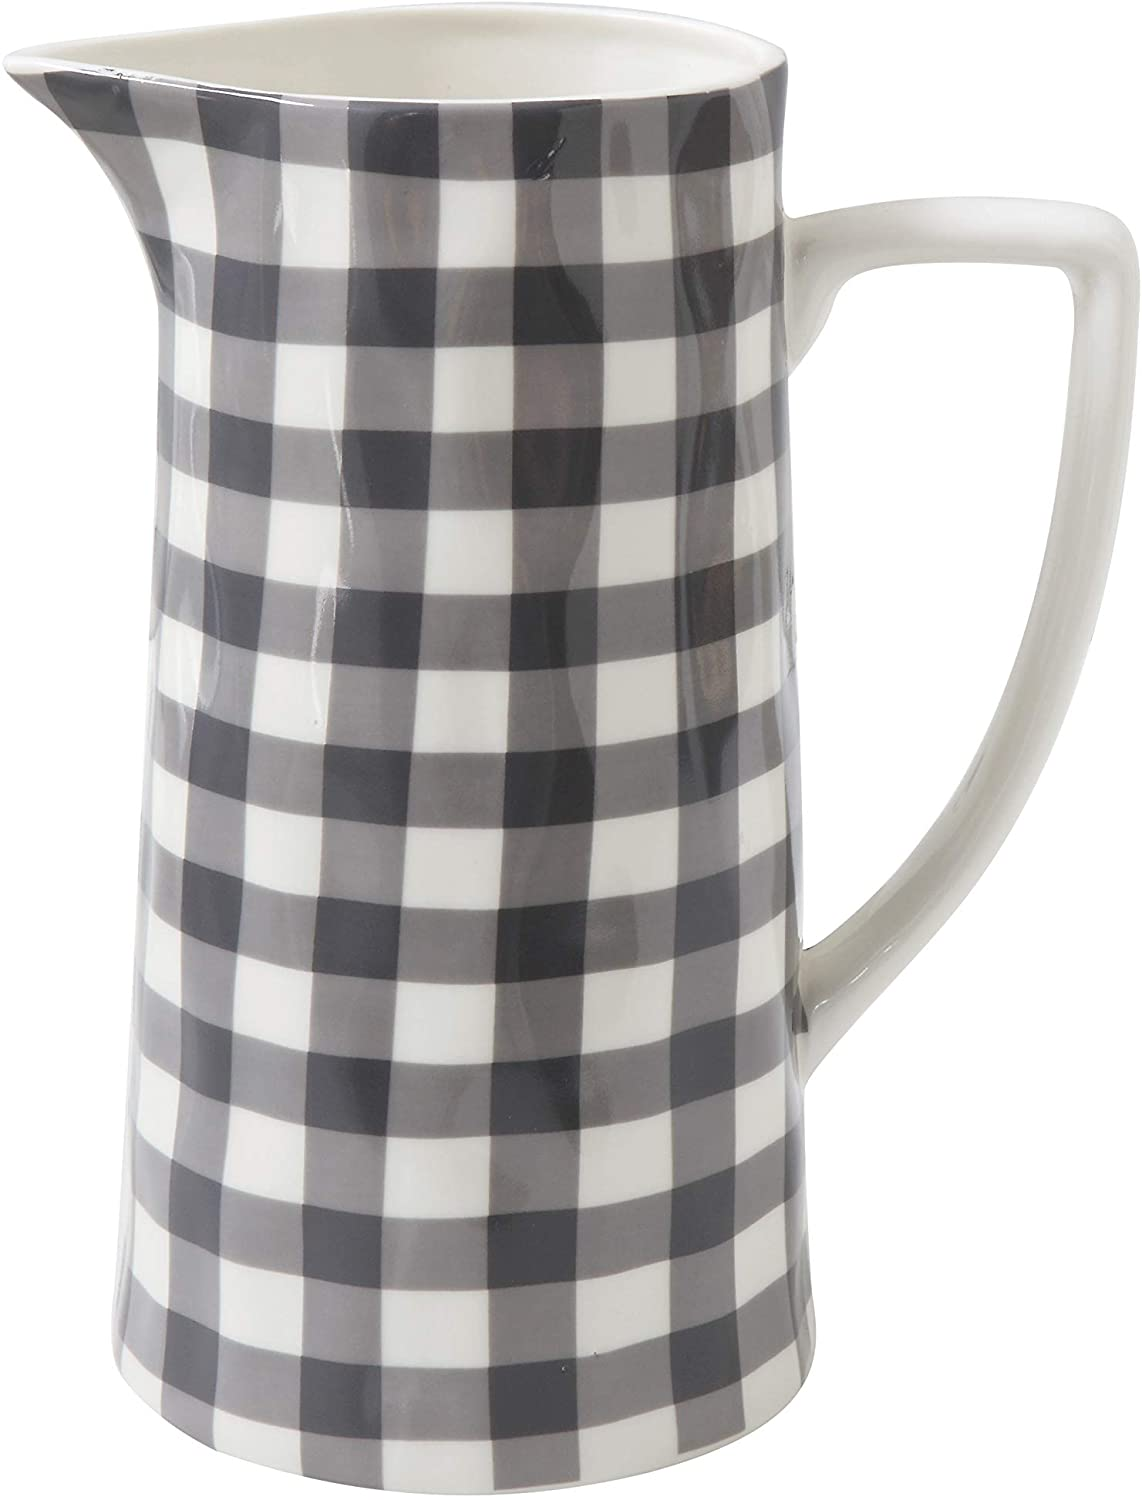 Creative Co-Op Black & White Gingham Stoneware Pitcher